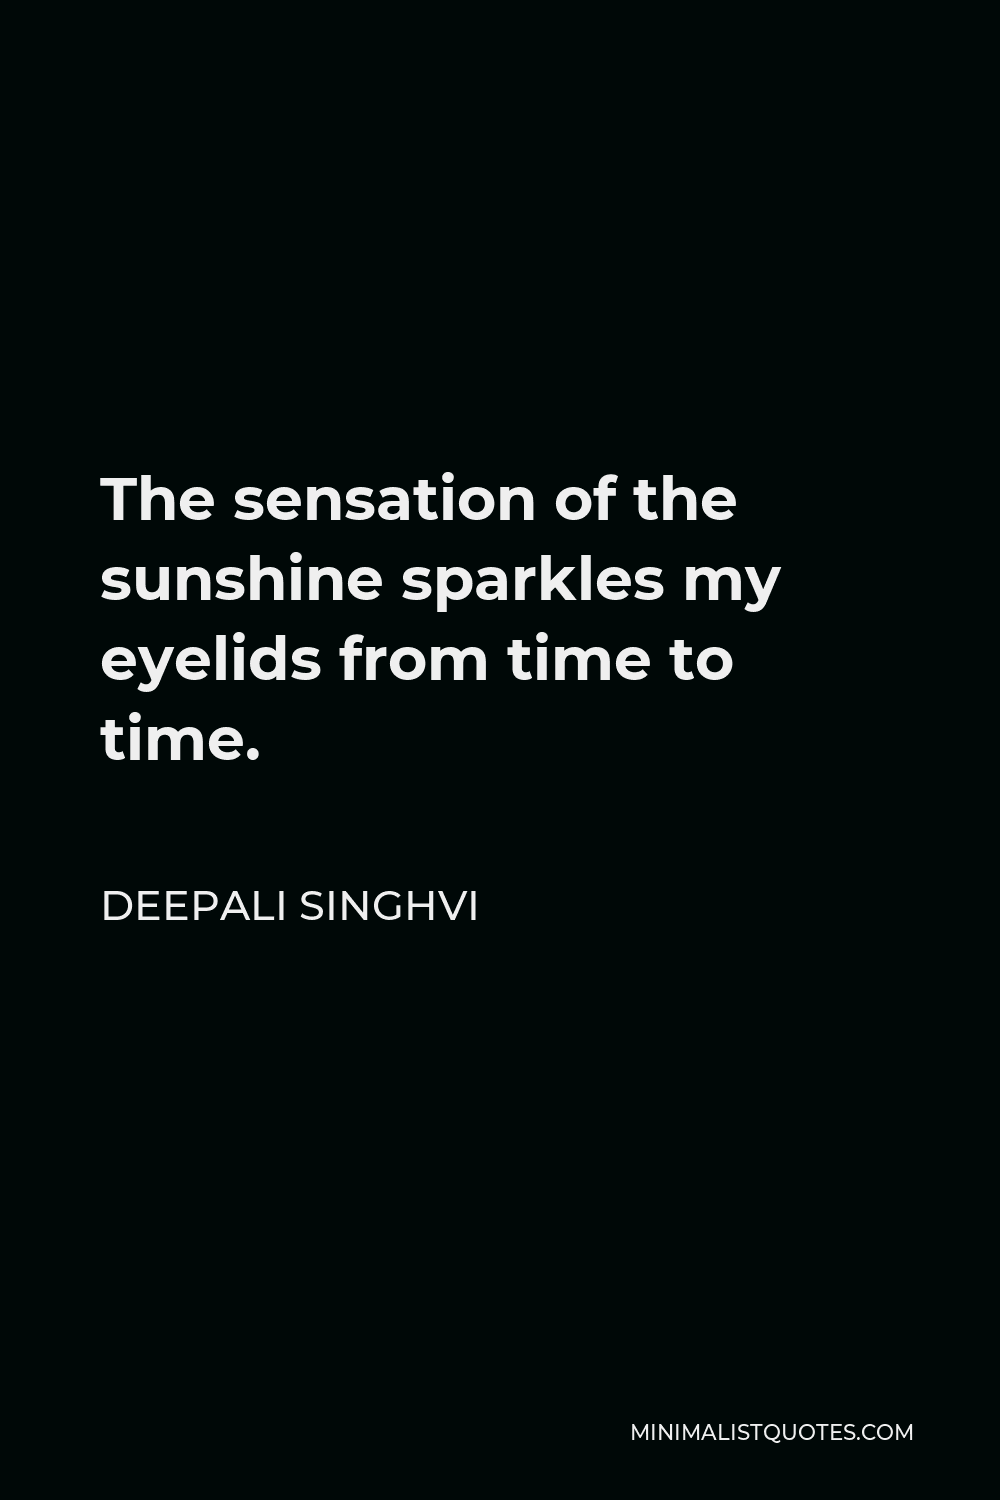 Deepali Singhvi Quote - The sensation of the sunshine sparkles my eyelids from time to time.